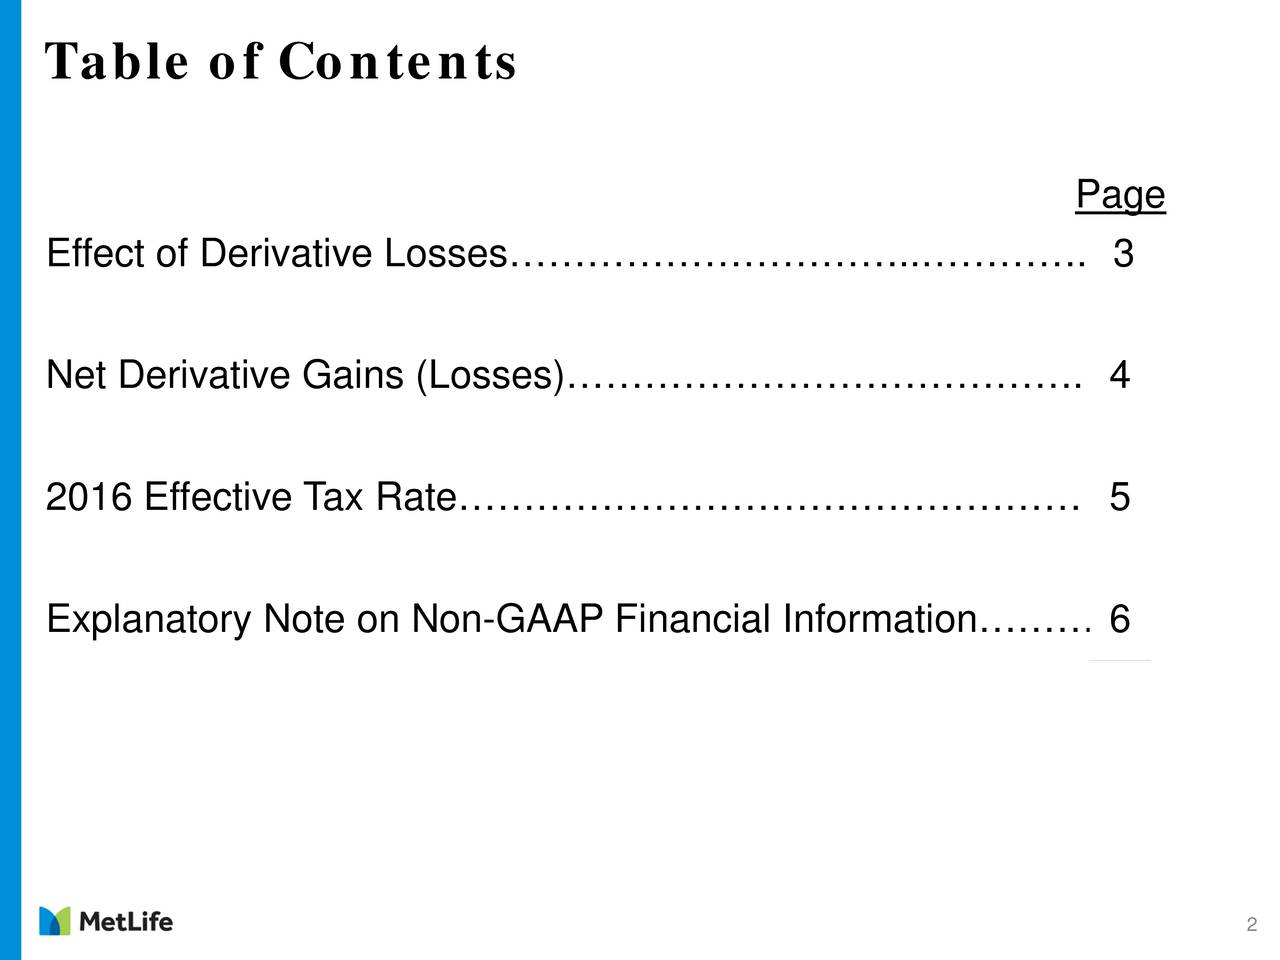 Page Effect of Derivative Losses... 3 Net Derivative Gains (Losses). 4 2016 Effective Tax Rate 5 Explanatory Note on Non-GAAP Financial Information 6 2